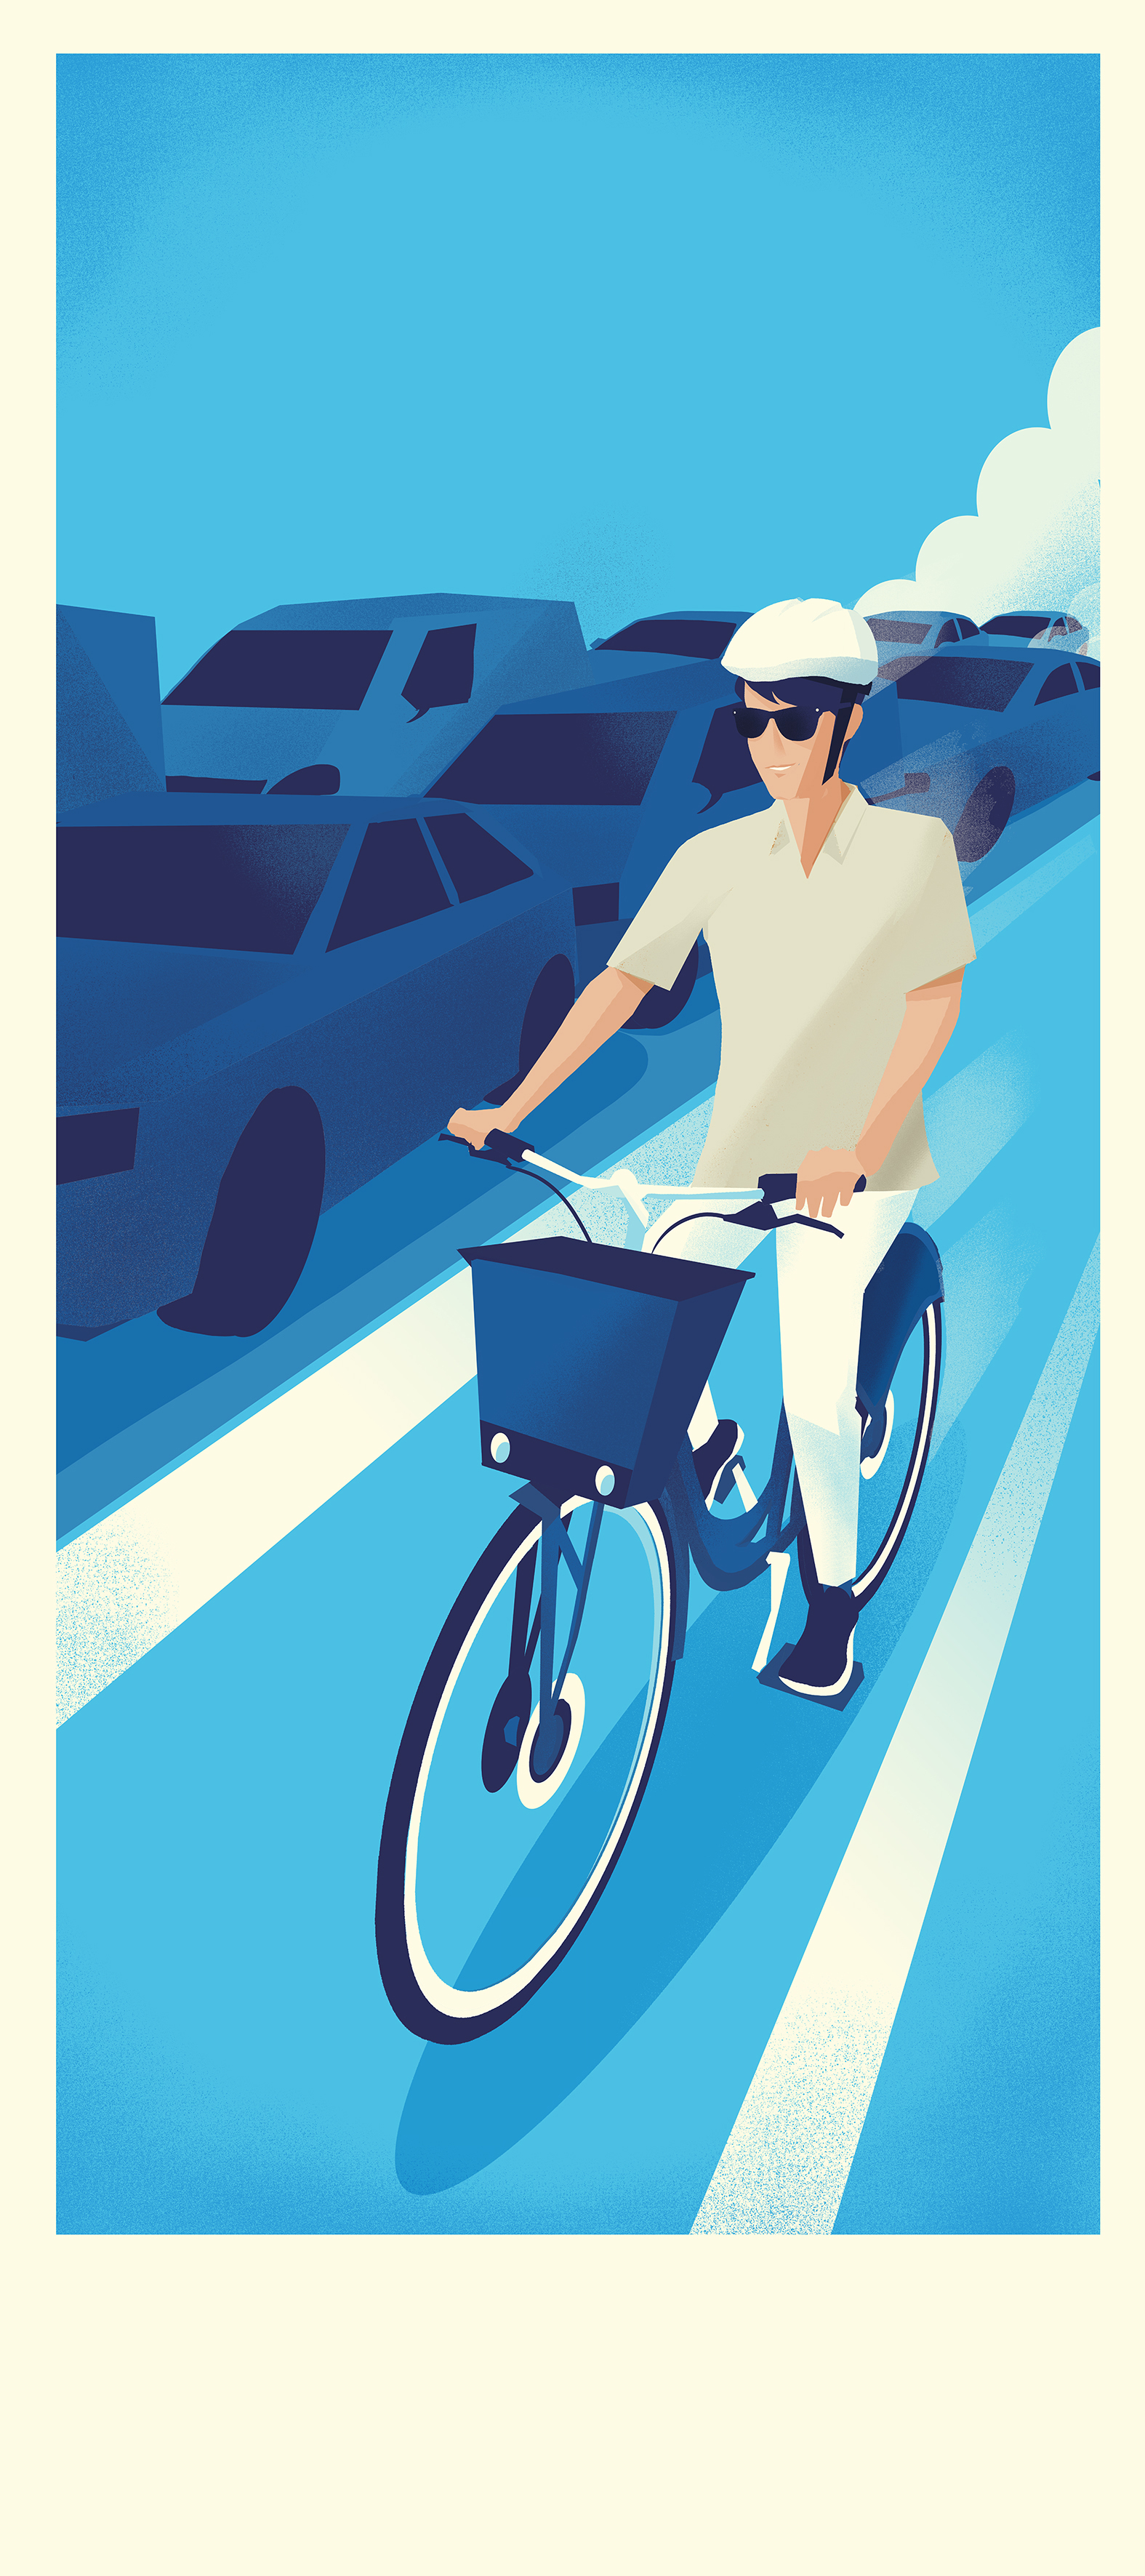 Citi Bike Miami >> Citi Bike Miami By Pietari Posti Agent Pekka